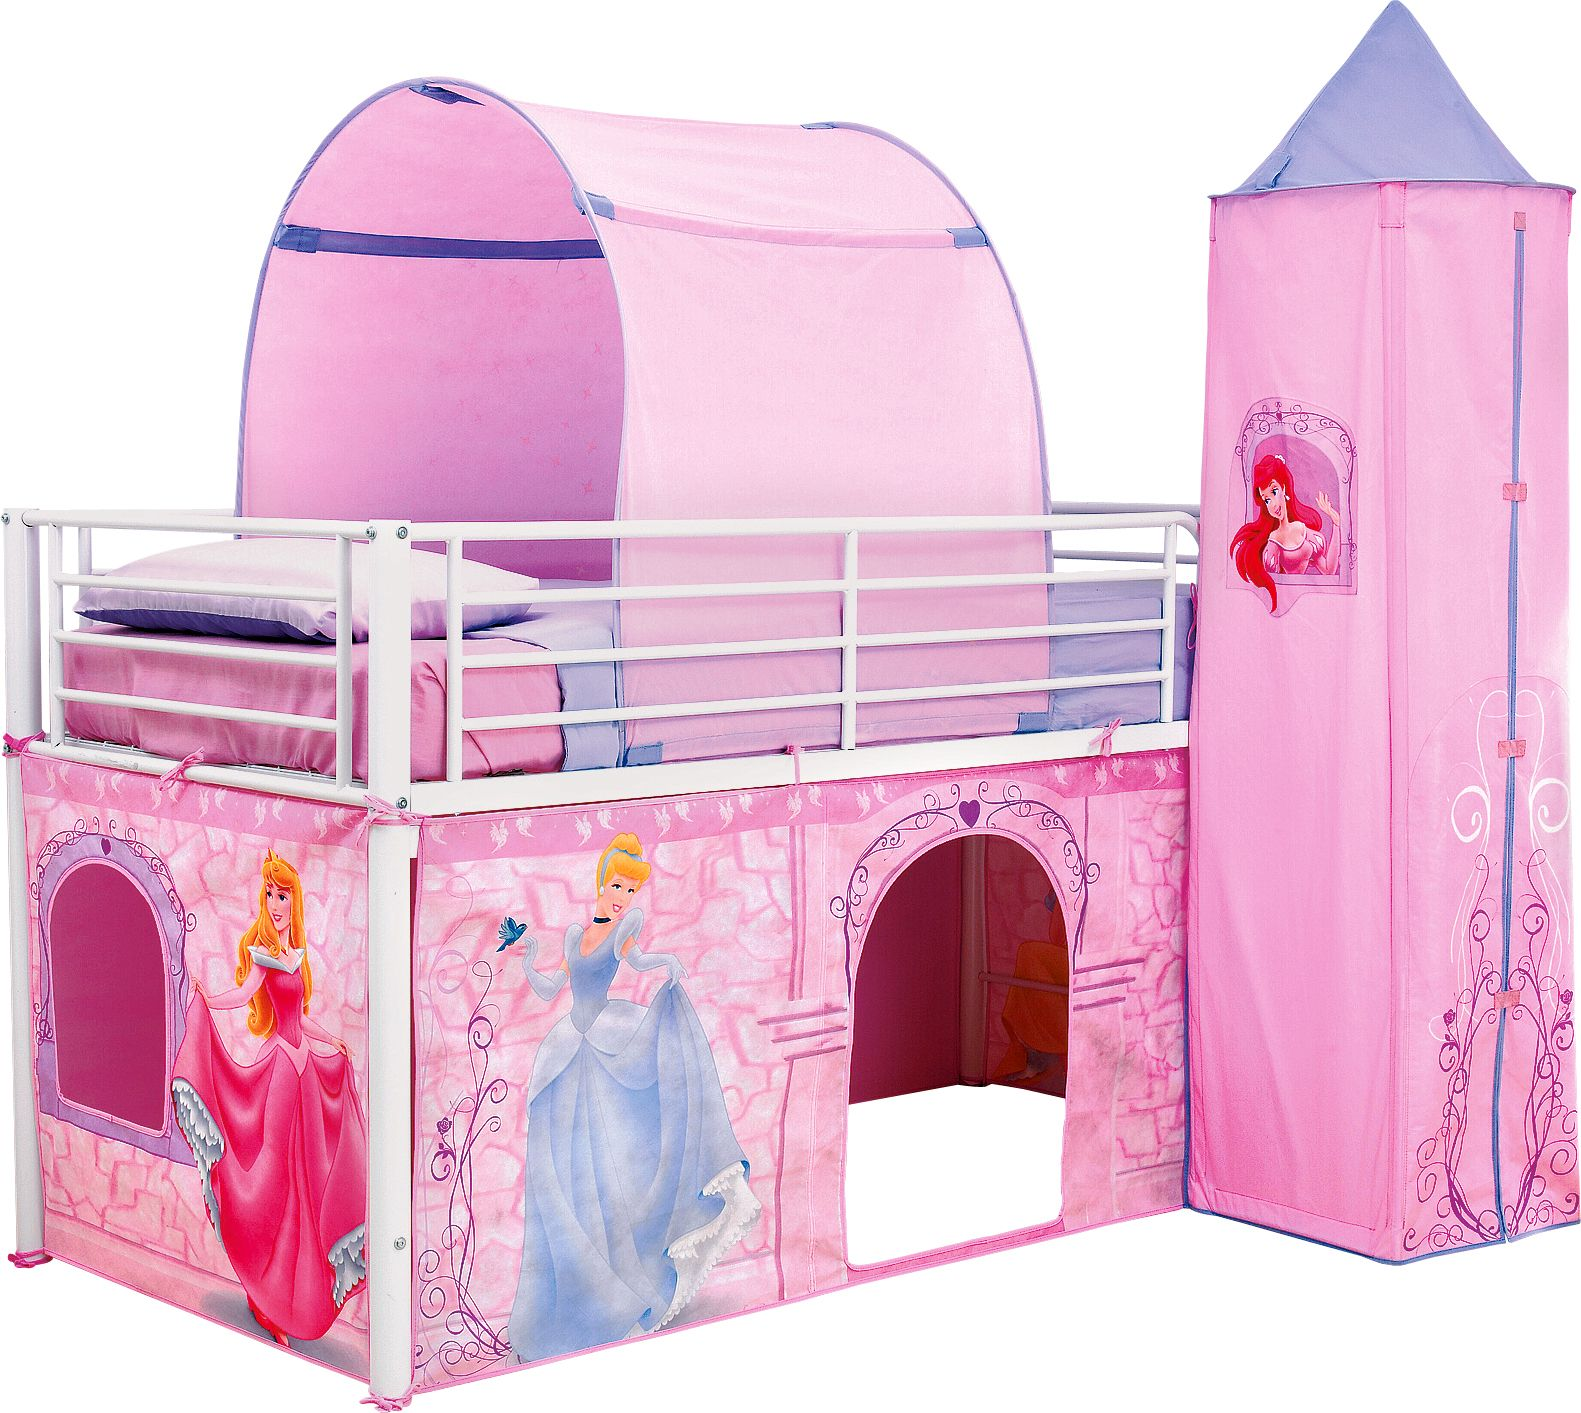 Pretty princess high sleeper playhouse bed - Your Little One Will Love Our Kids Room Ideas Featuring Favourite Brands Like Disney Princess Batman Shop Kids Bedding Furniture More At Toys R Us